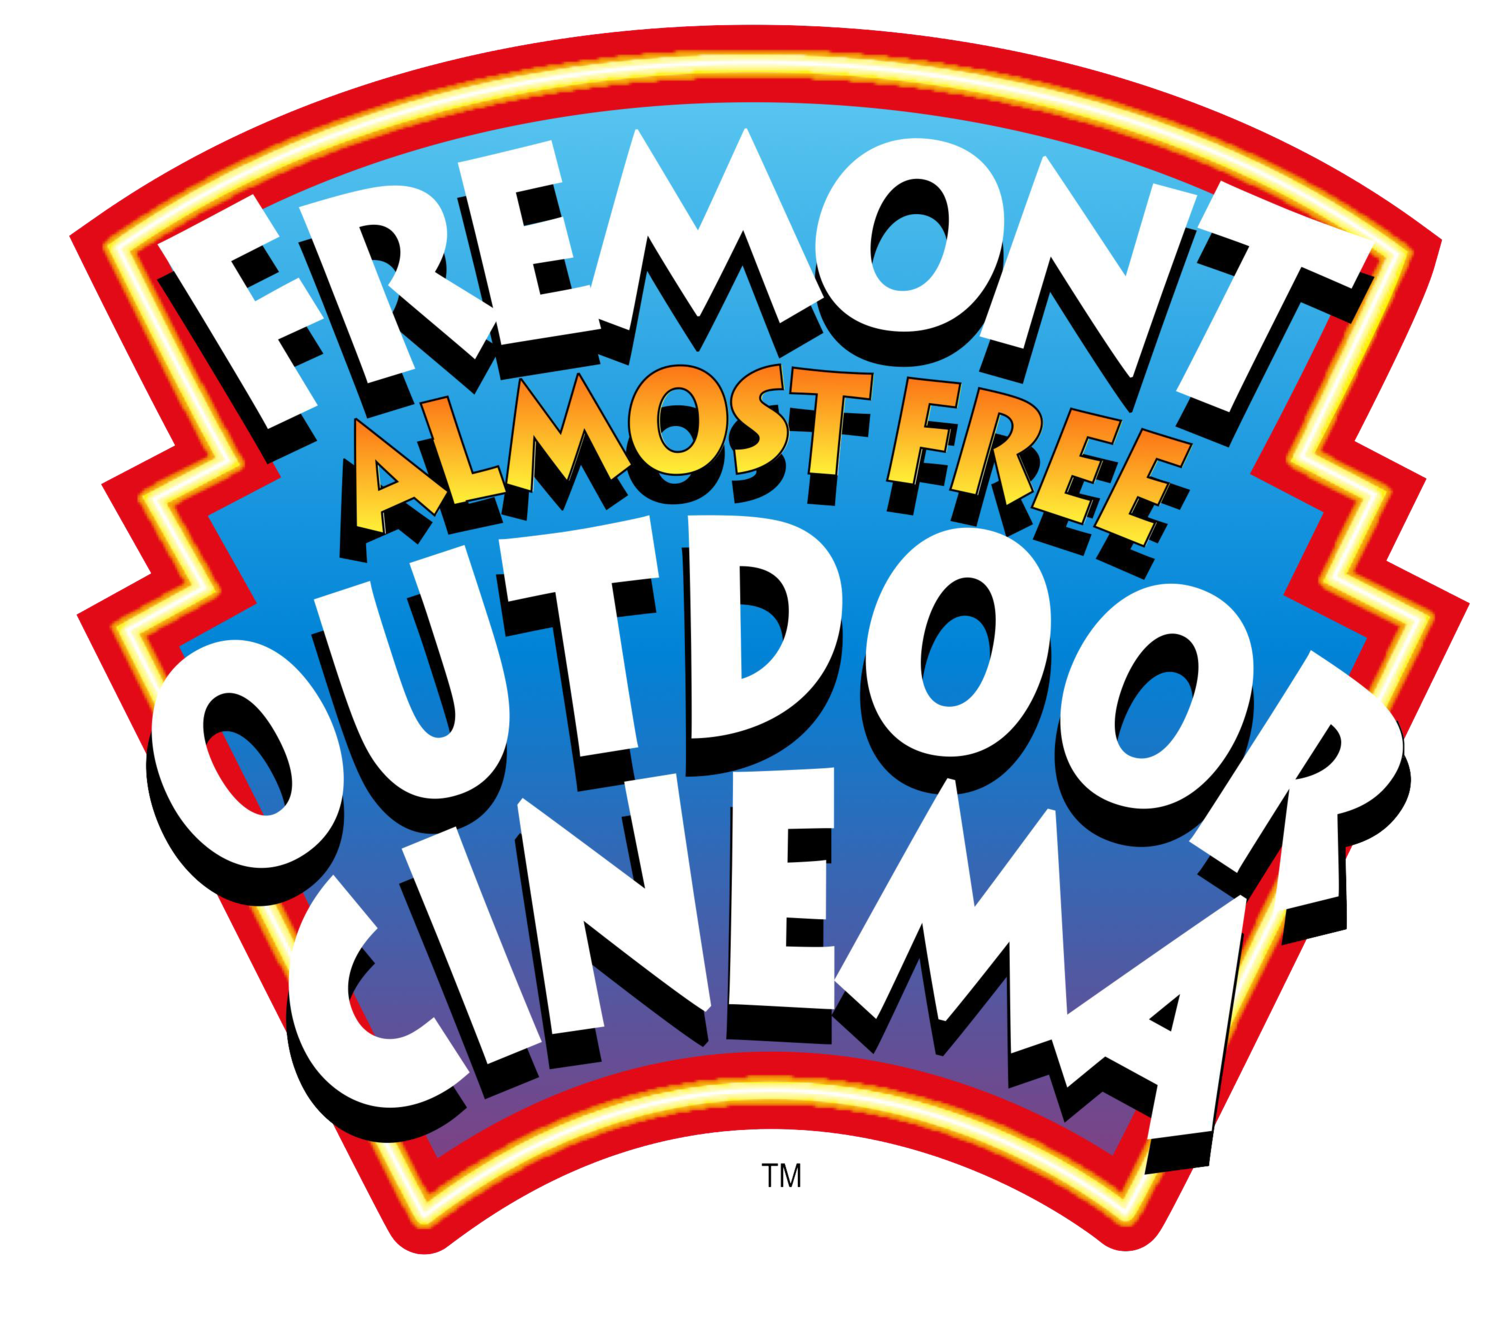 Fremont Outdoor Cinema presented by Jameson First Shot